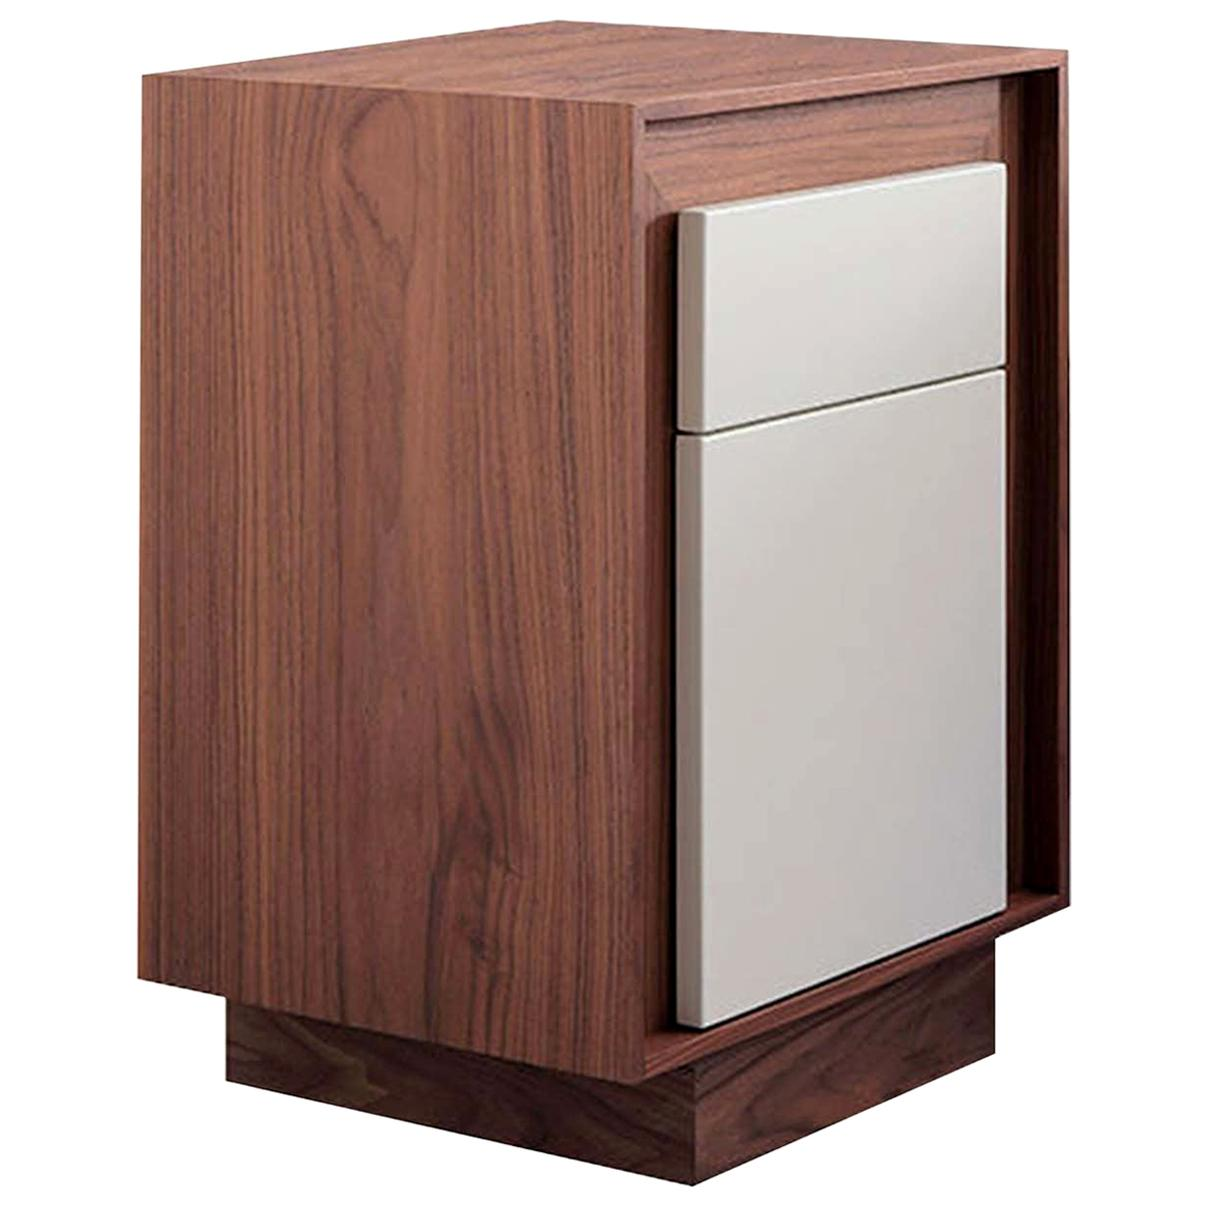 Evandro Wood Bedside Table